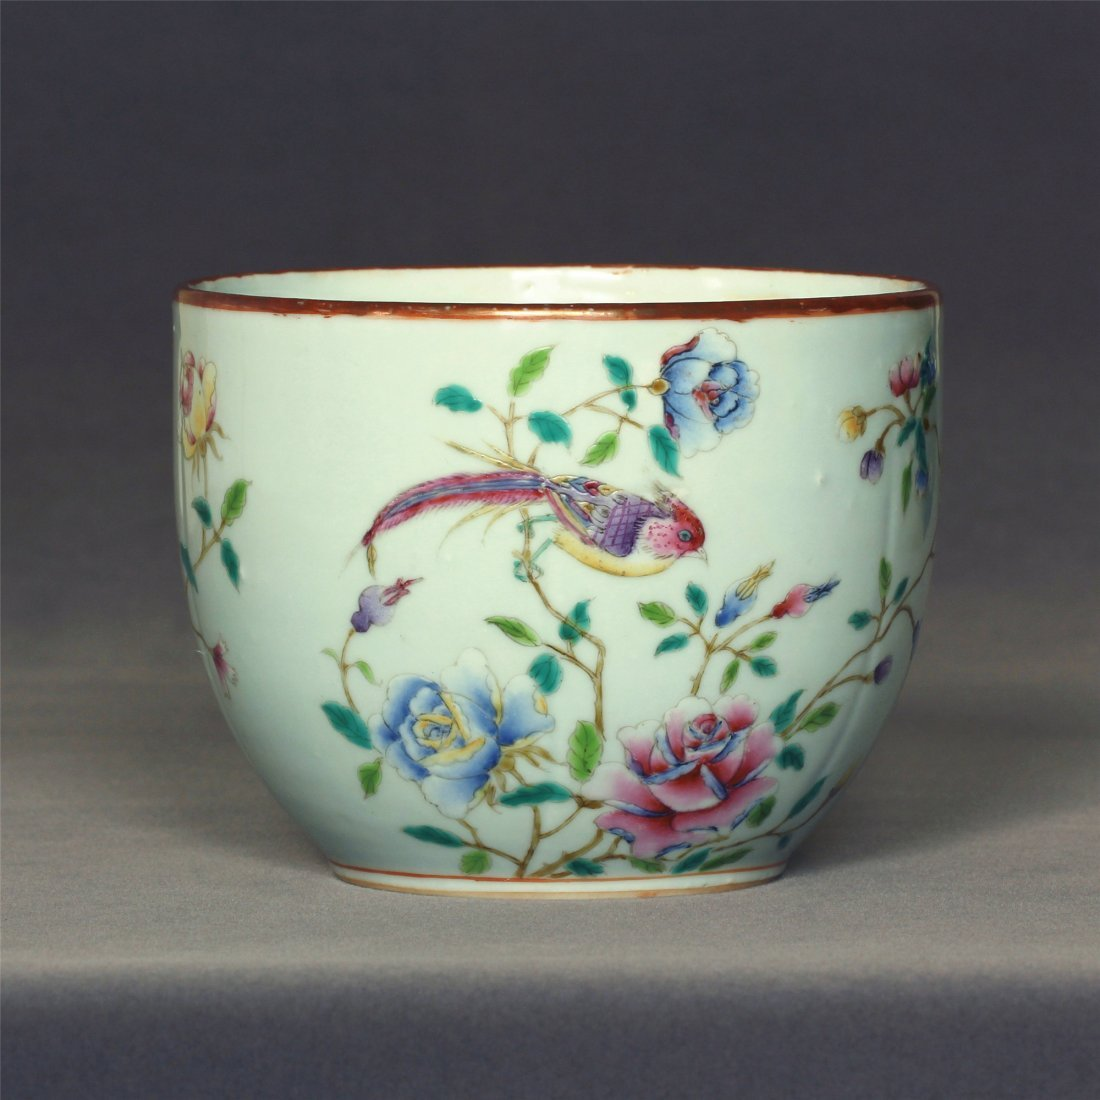 Famille rose porcelain small jar of Qing Dynasty